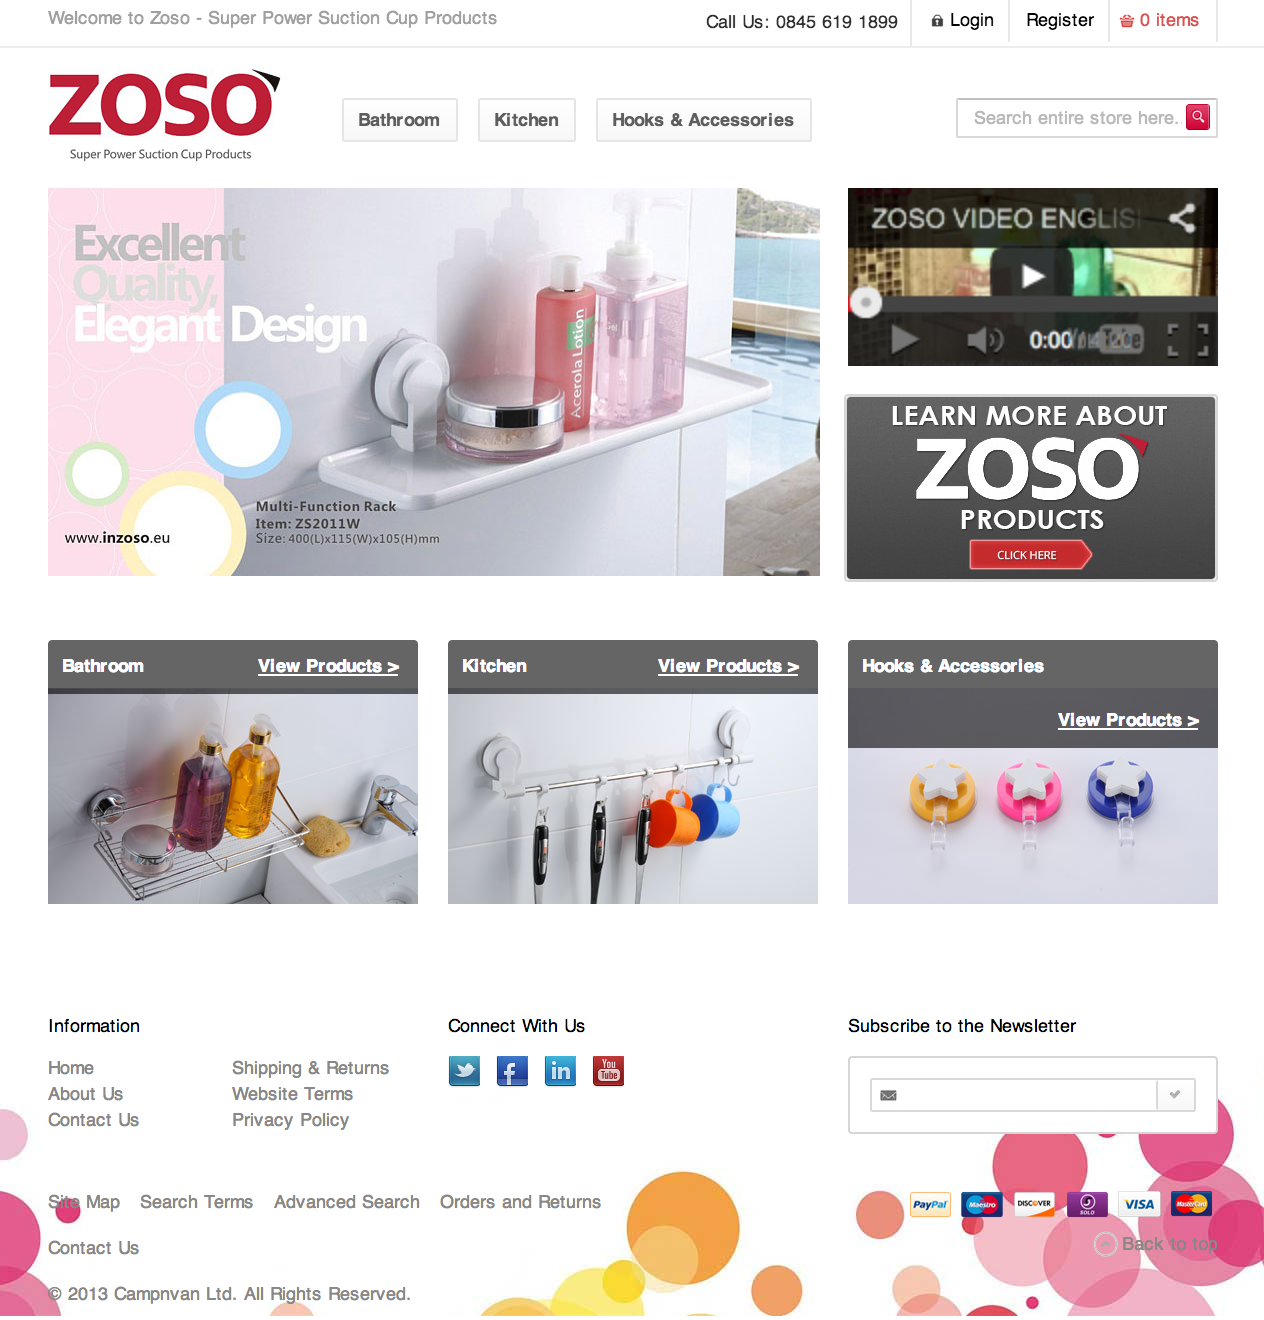 Zoso Super Power Suction Products